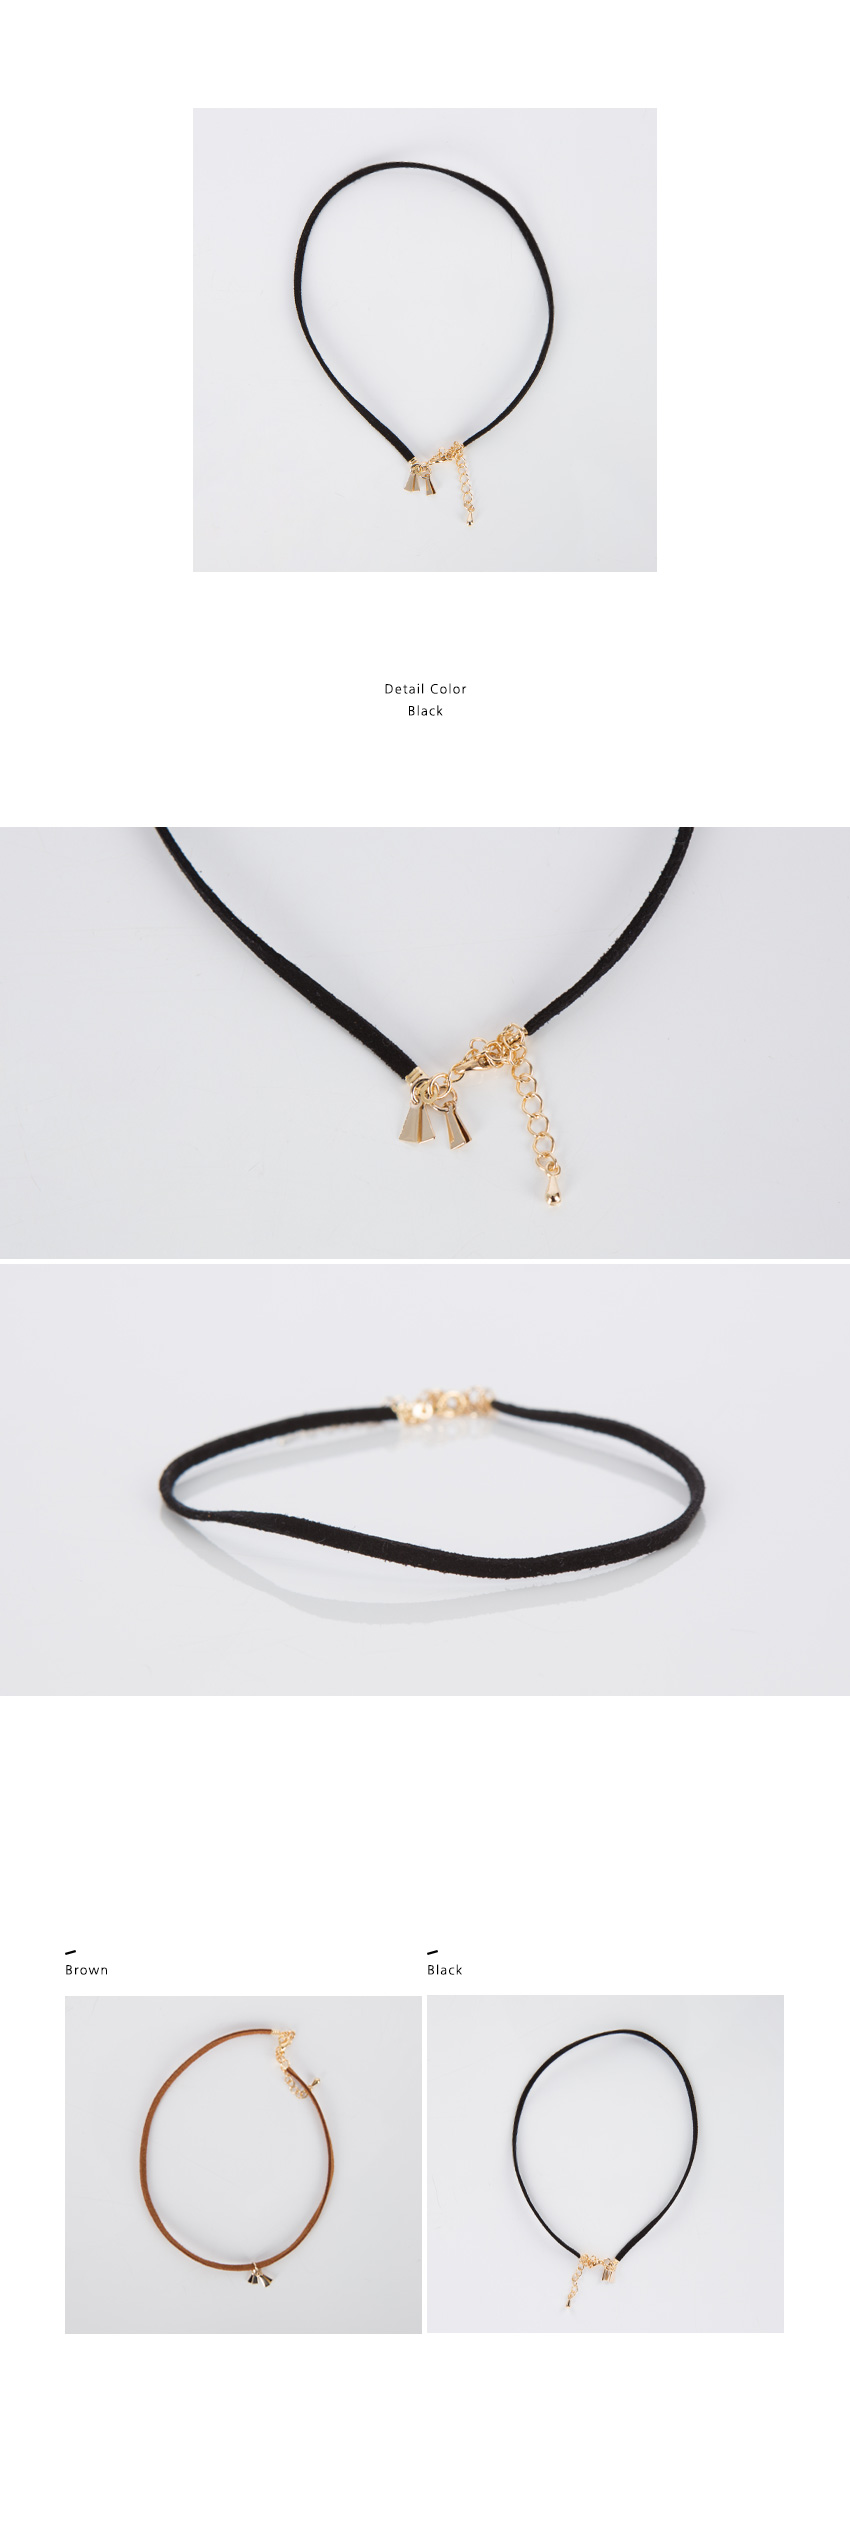 Faux Suede Choker With Golden Pendant|